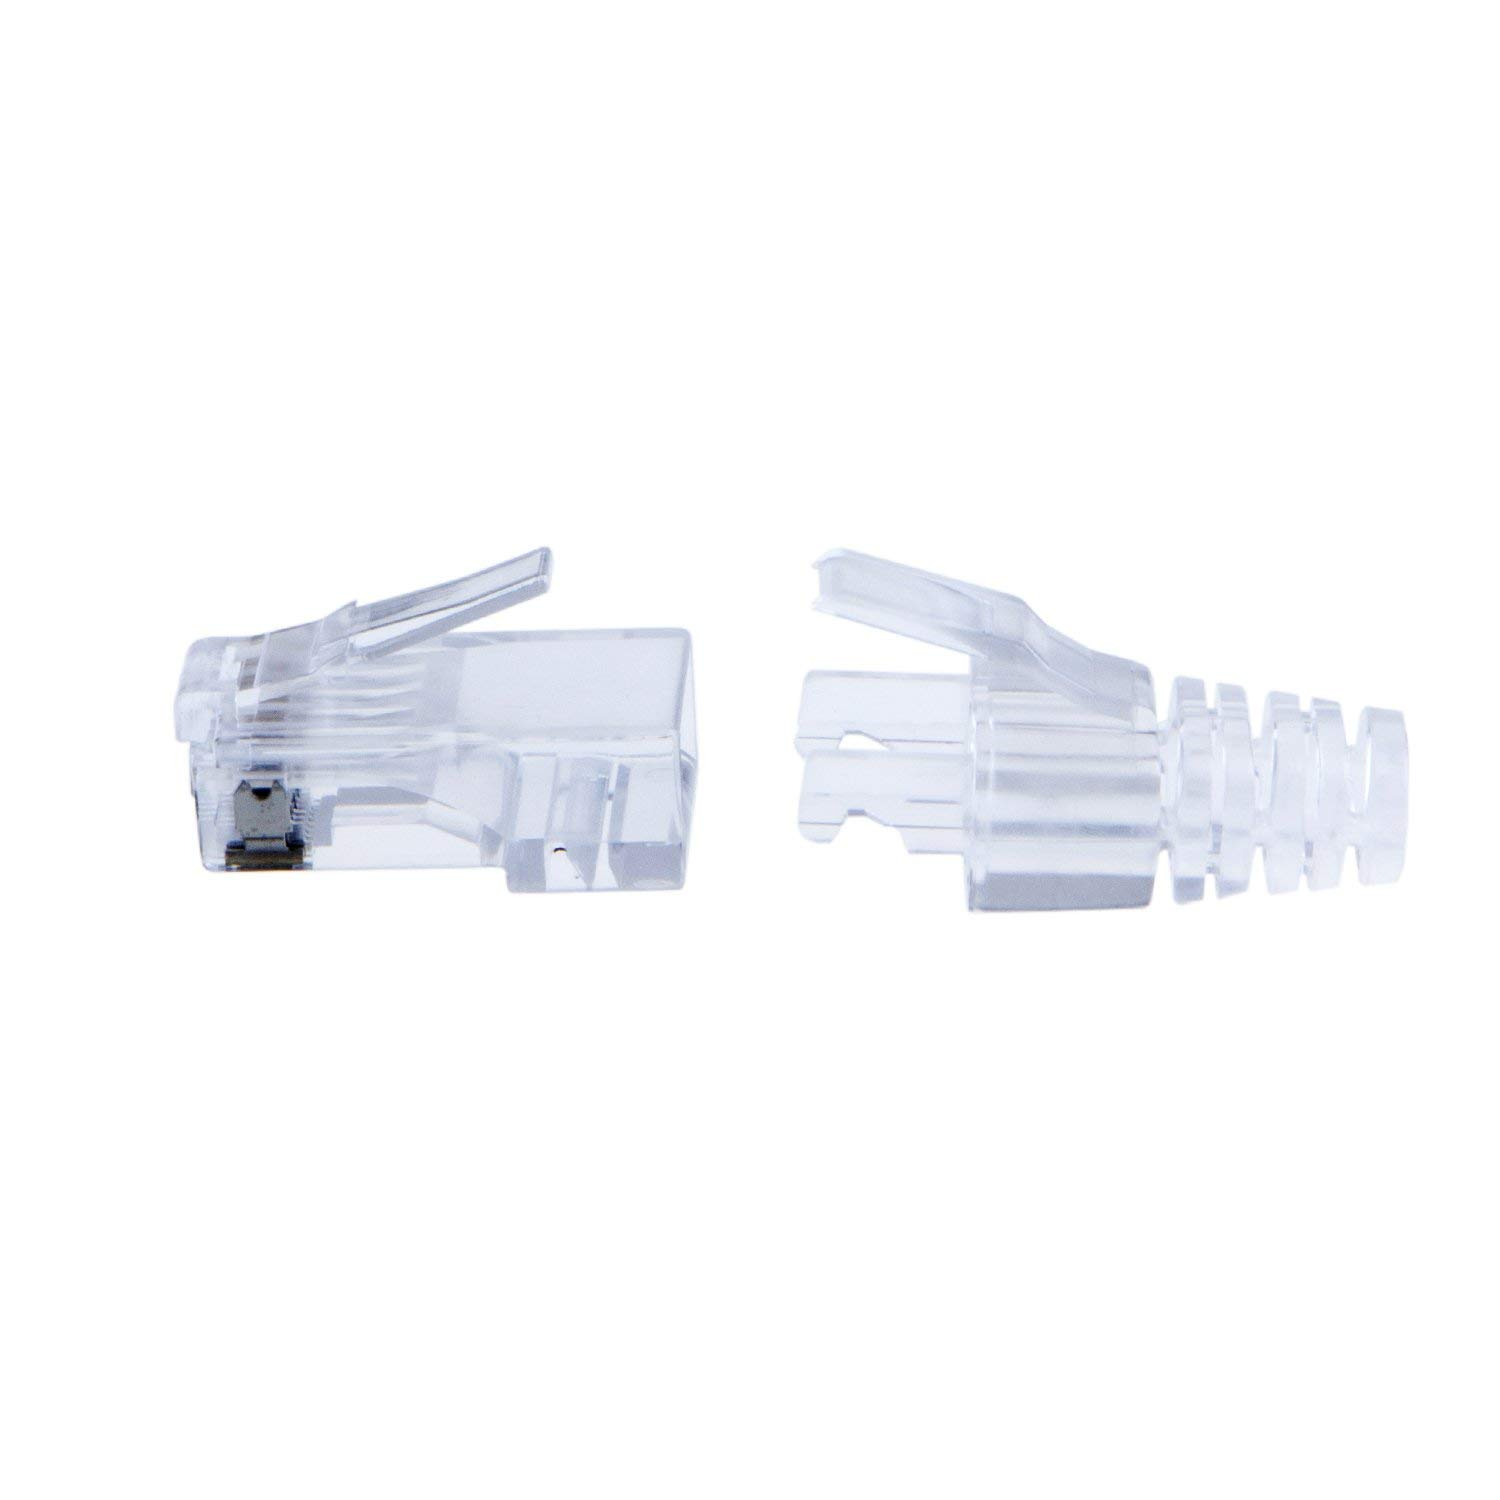 Renewed CableCreation 100-PACK Cat 6 RJ45 Plug with Hood Connector Transparent